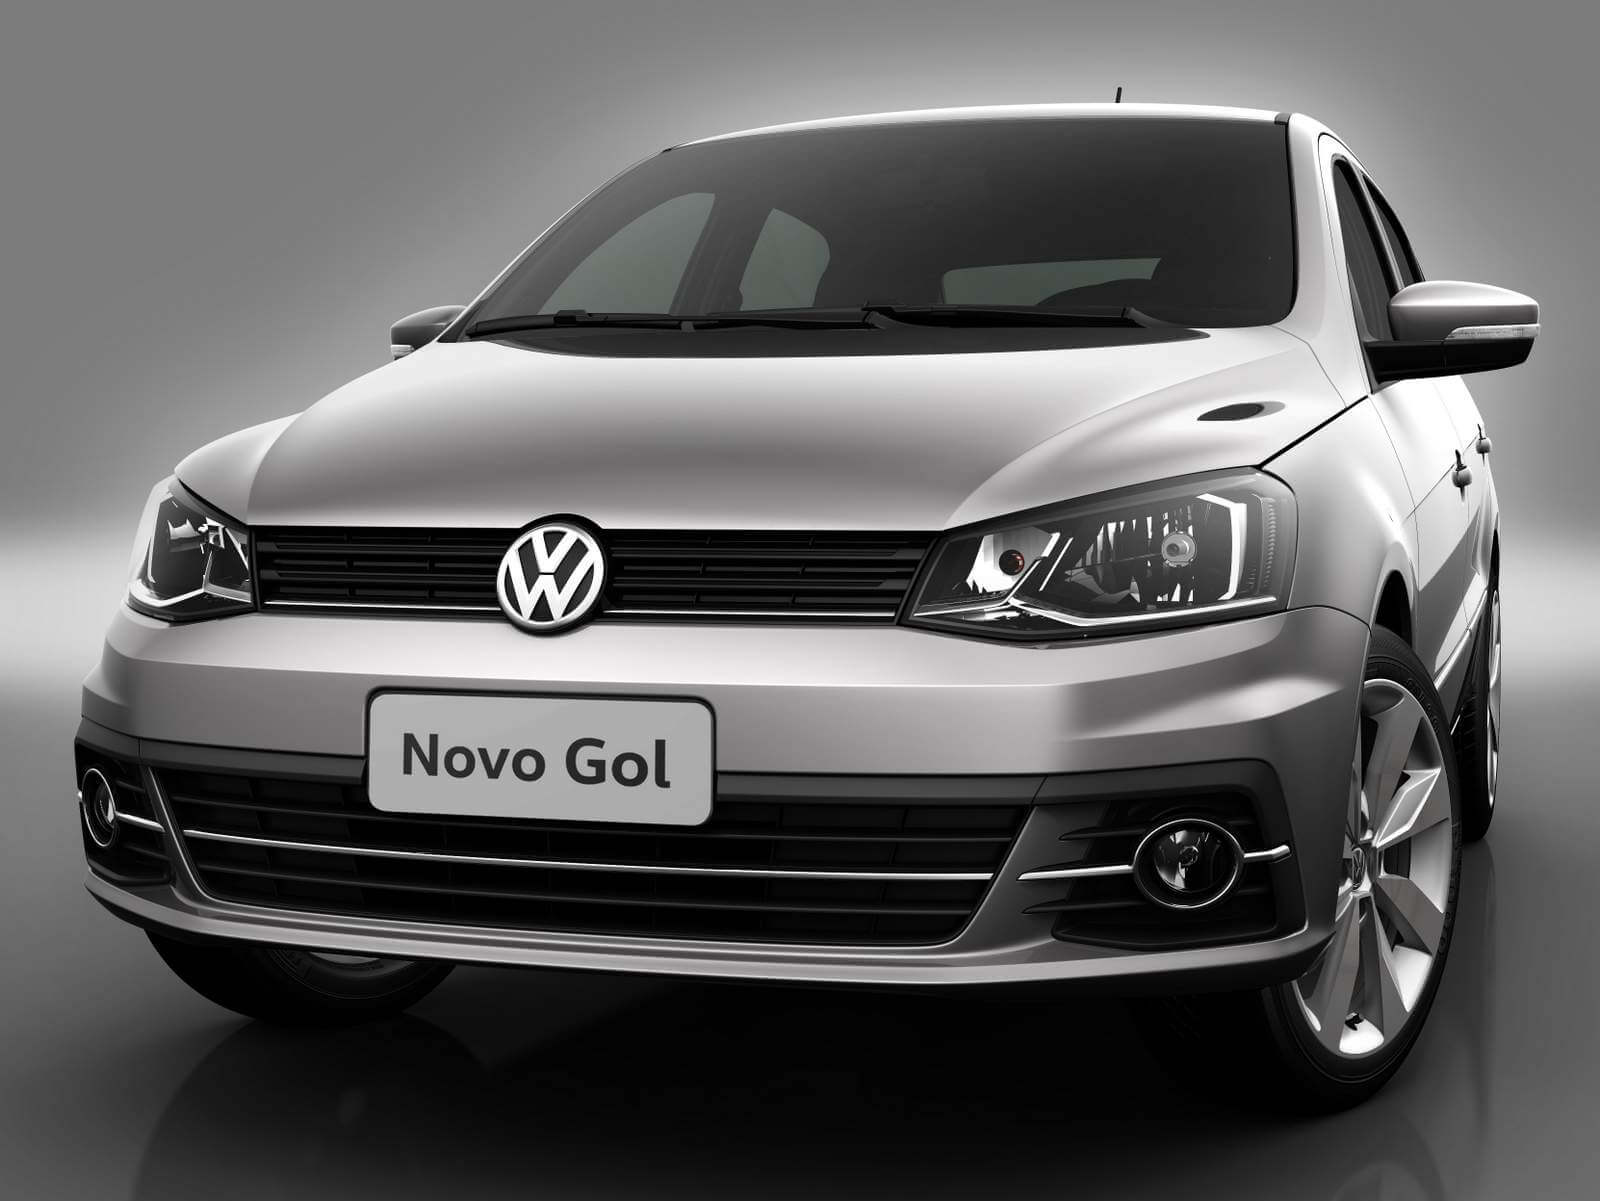 Financiamento VW Gol: Preço, Parcela e simulador de financiamento